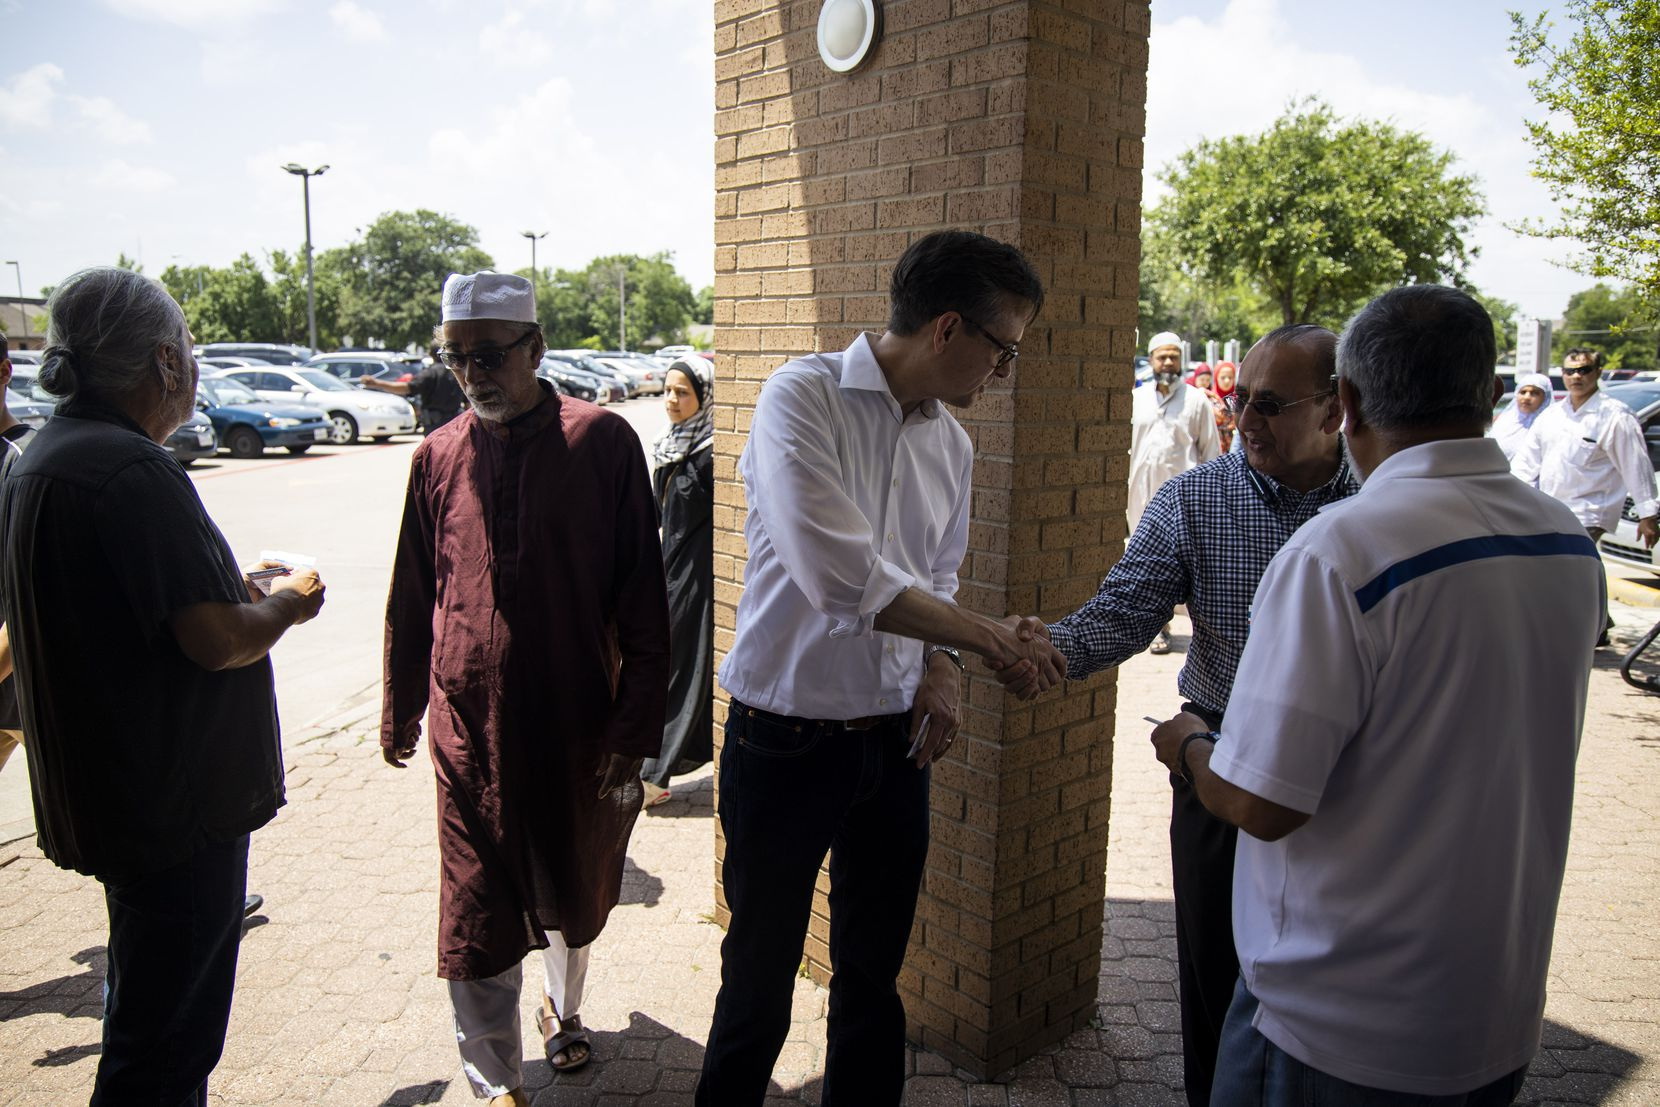 Scott Griggs shakes hands with worshippers at the Islamic Association of North Texas mosque in Richardson before an afternoon prayer service. Thousands of North Texans, many of them from Dallas, attend the services.  (Shaban Athuman/Staff Photographer)